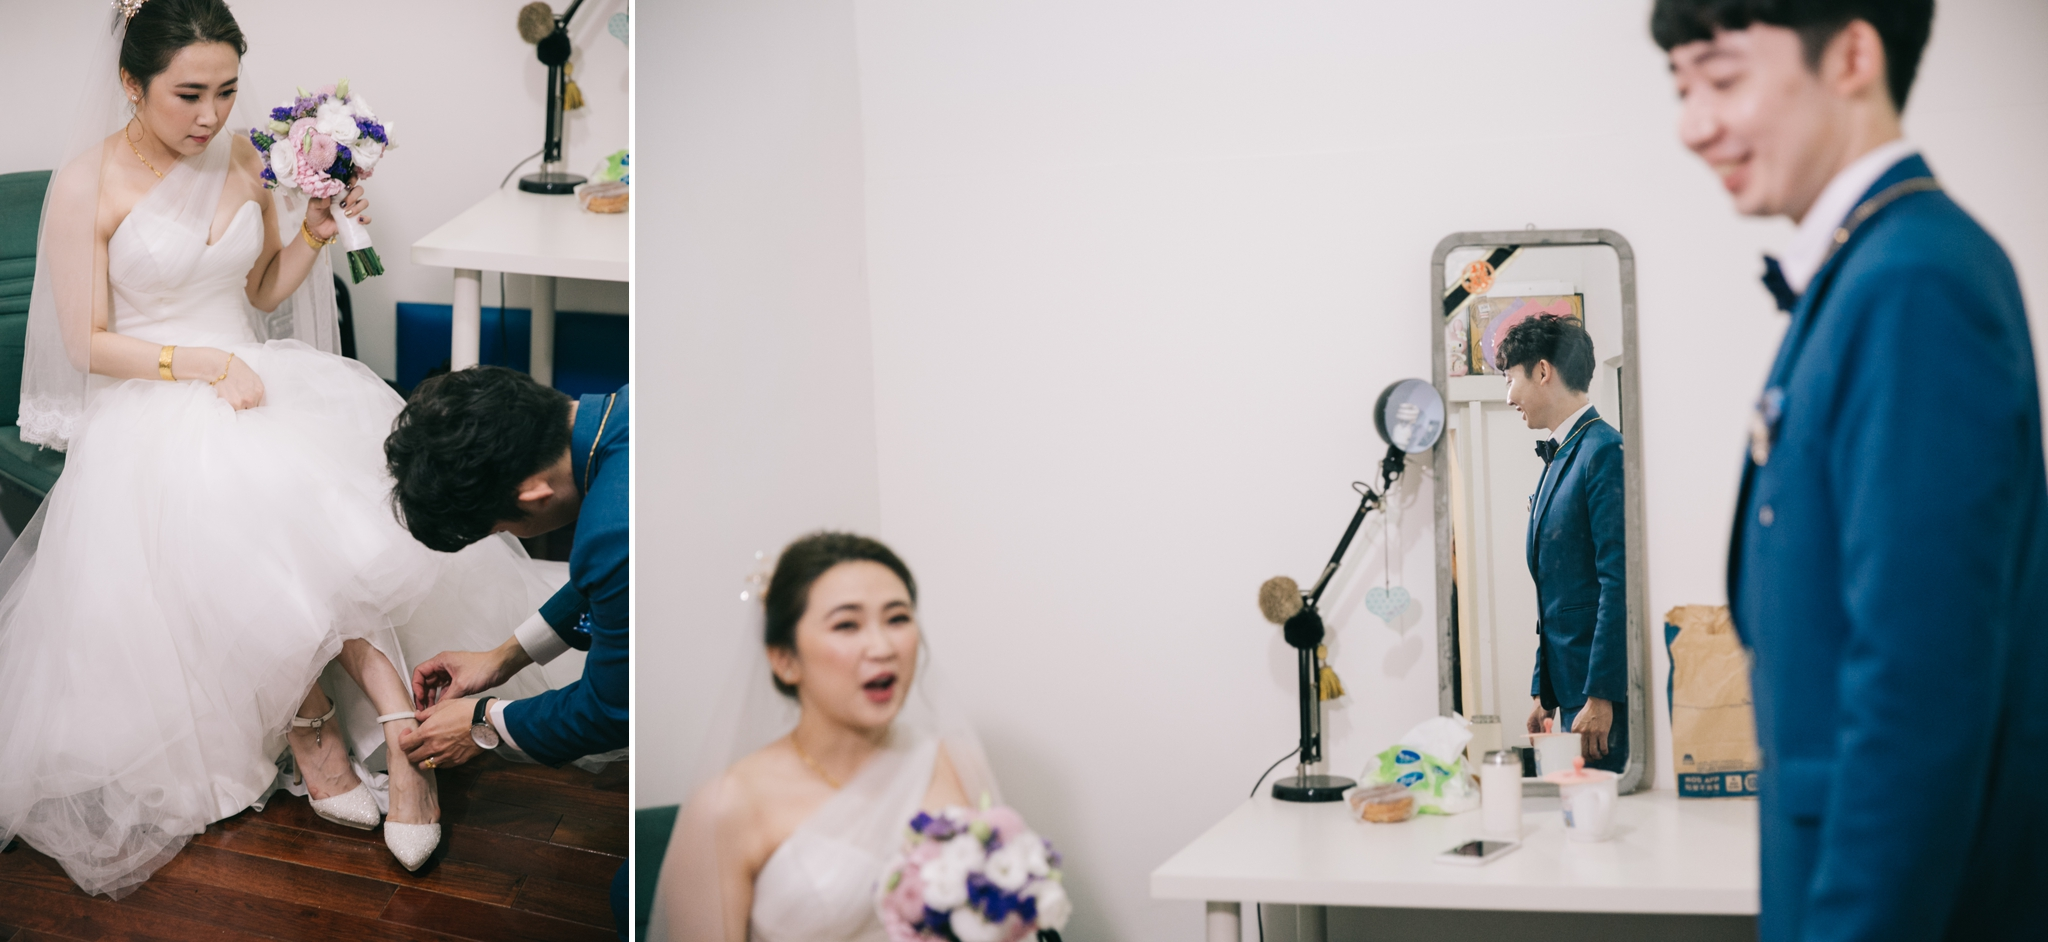 Keddy+Richard-wedding-新莊頤品飯店-087.jpg